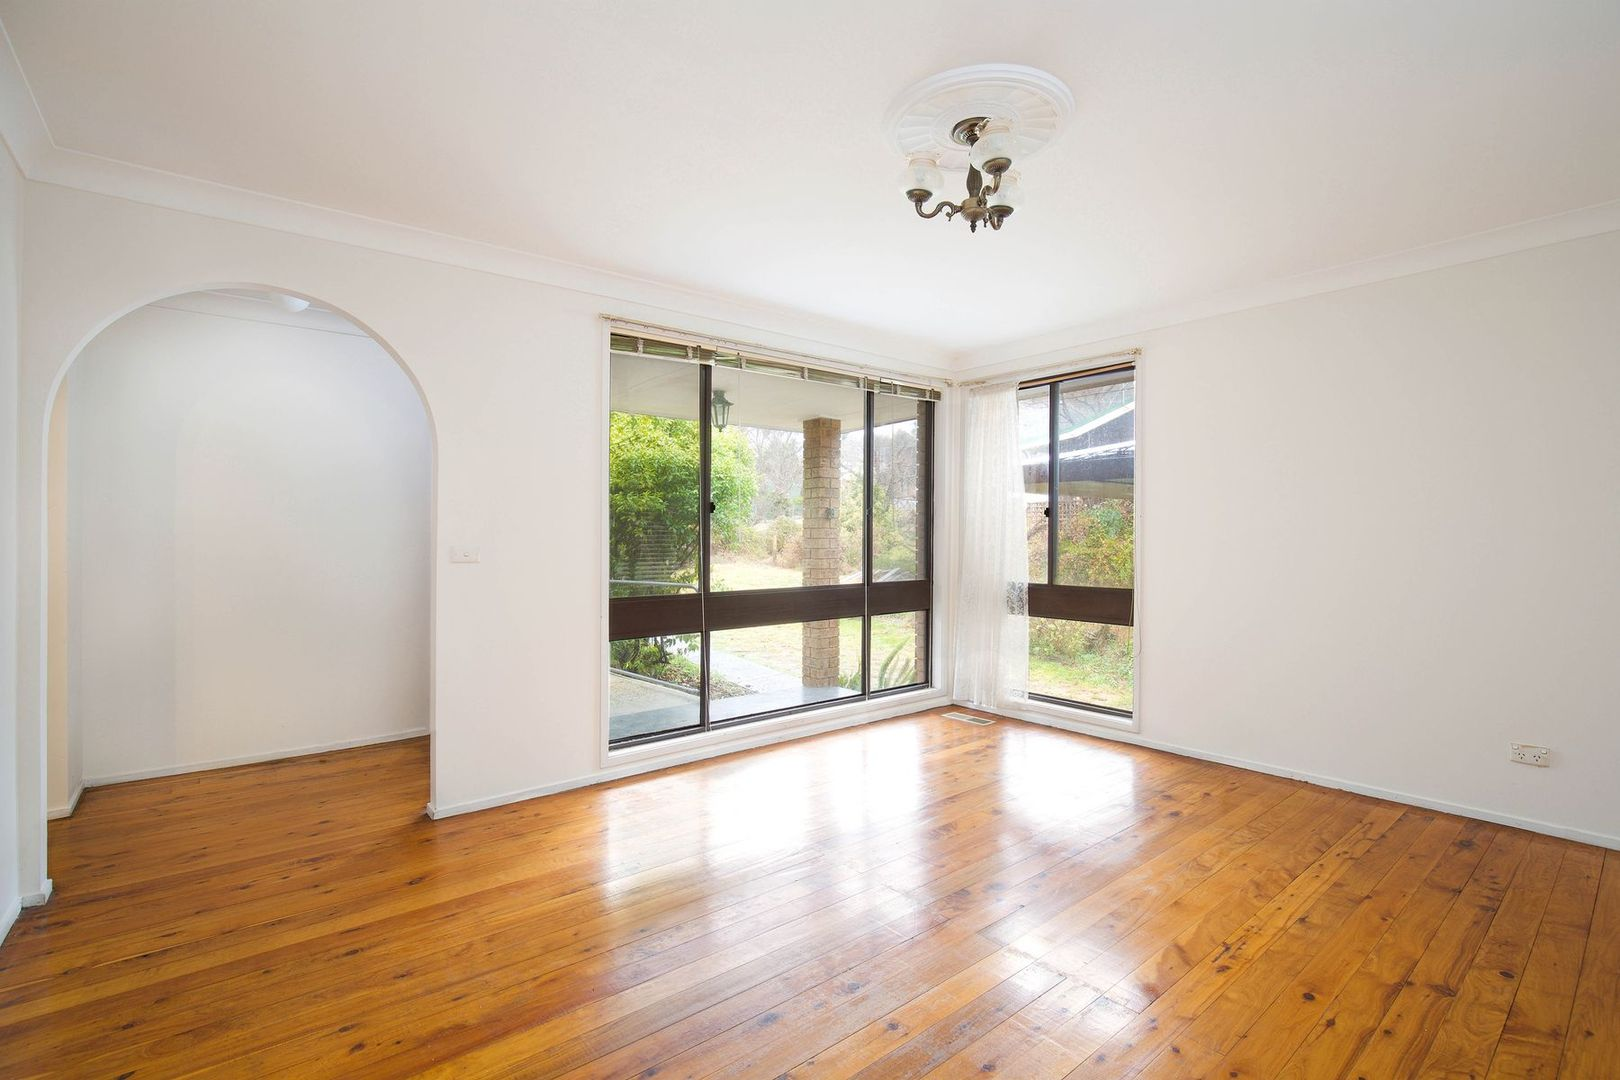 50 Minni Ha Ha Road, Katoomba NSW 2780, Image 1